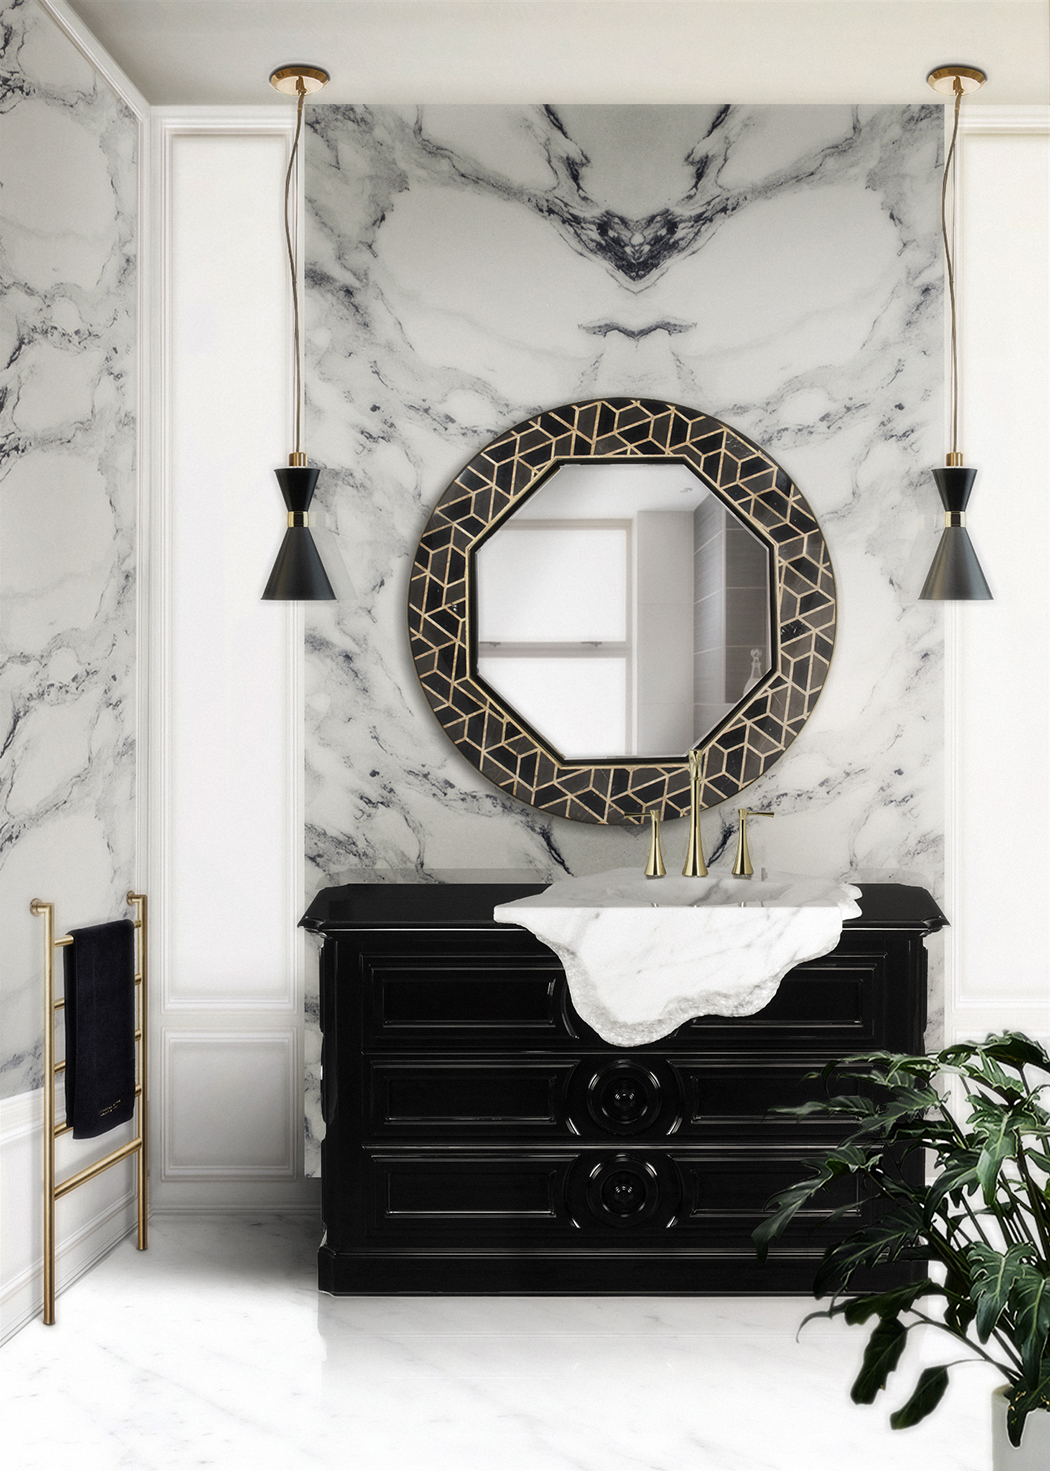 5 Marble Bathroom Accessories to Fall in Love Marble Bathroom 5 Marble Bathroom Accessories to Fall in Love 63 HR